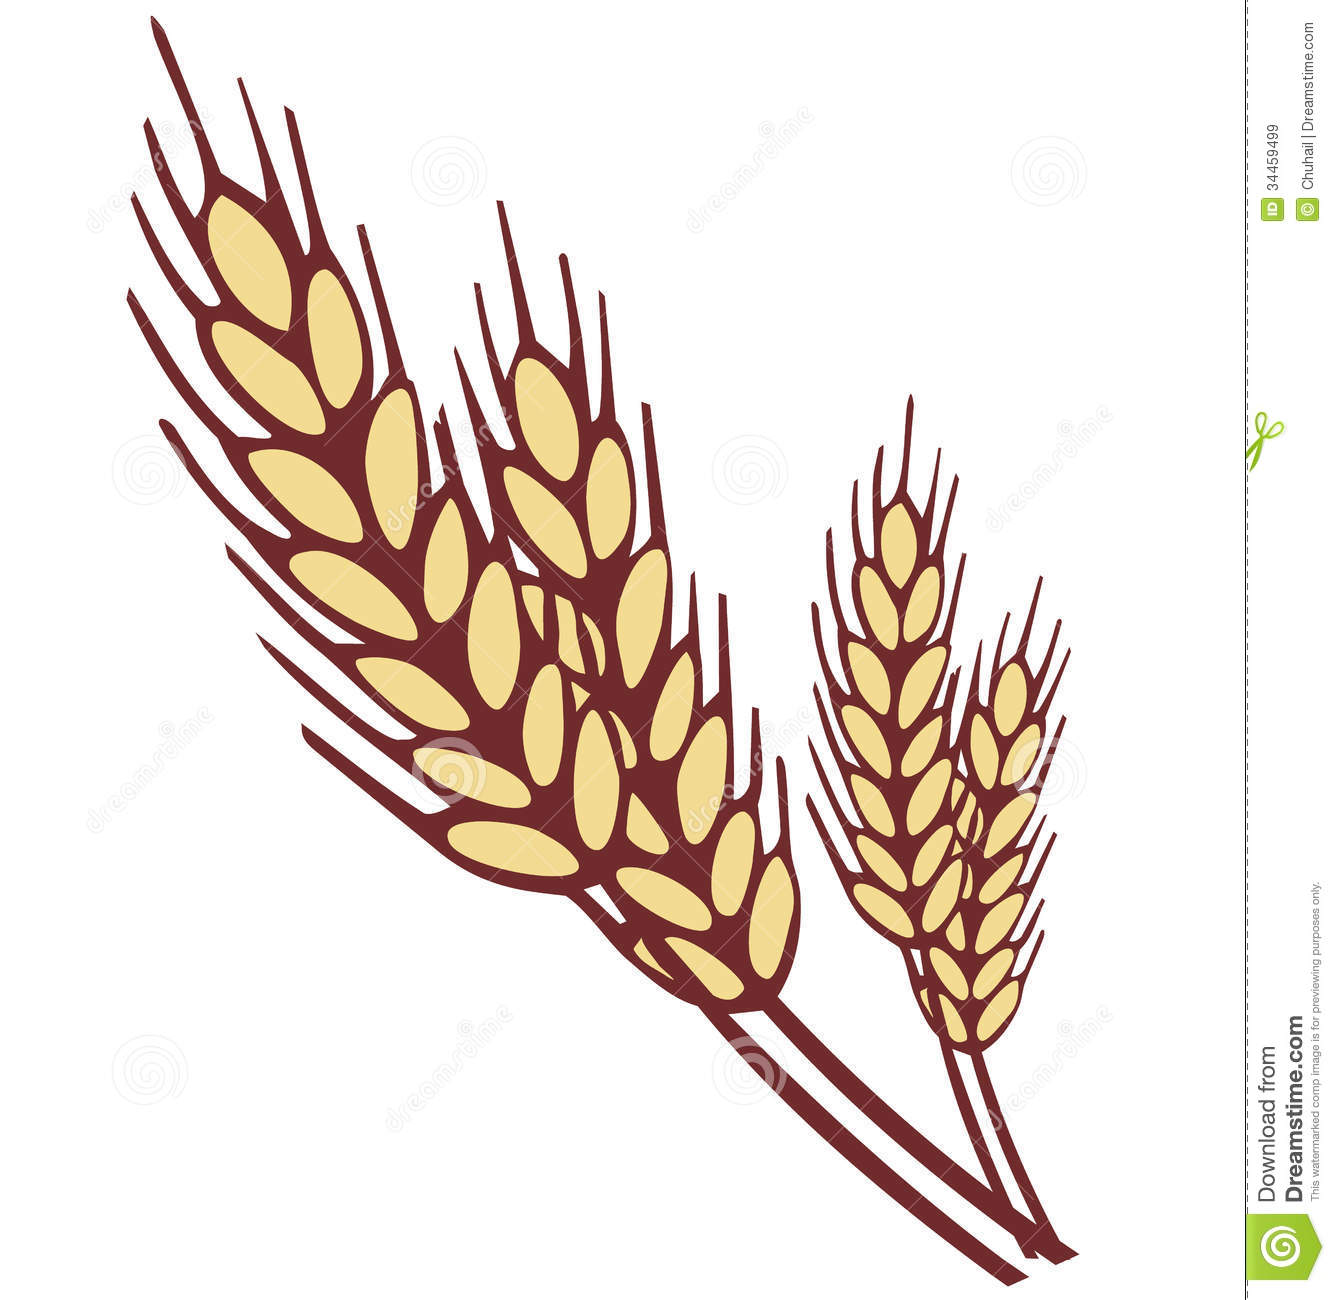 Wheat Ear Royalty Free Stock Images - Image: 34459499